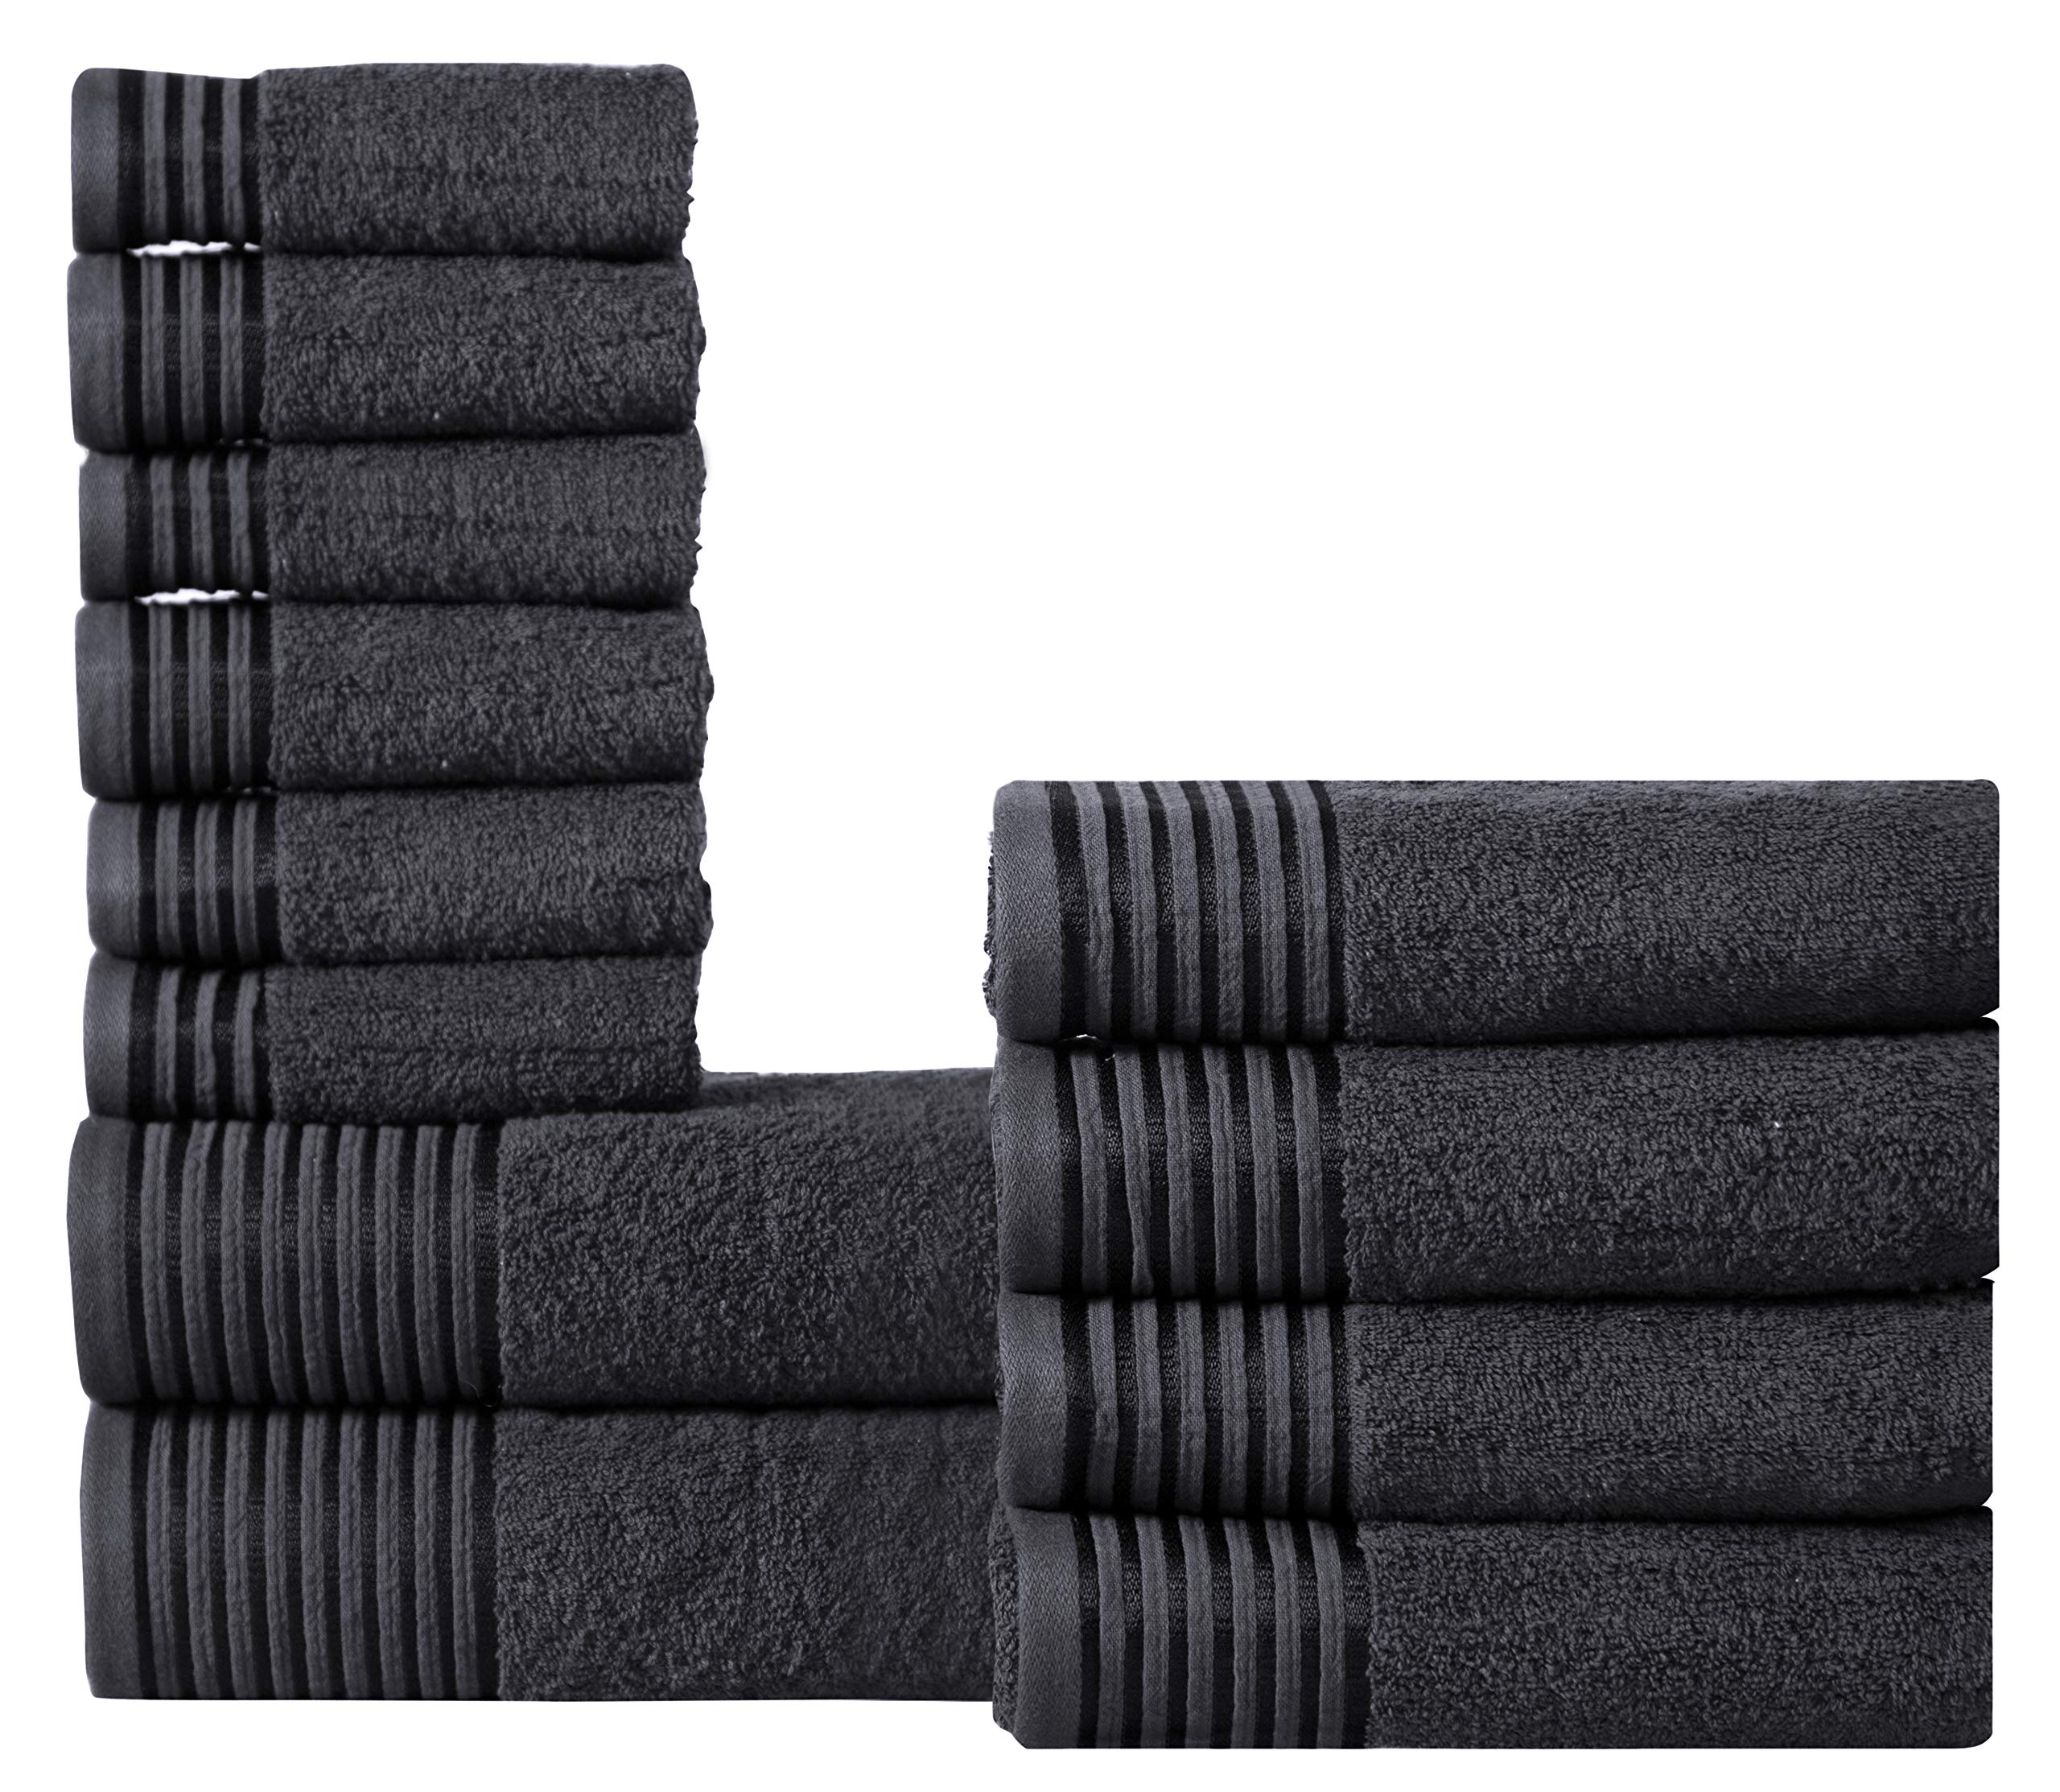 600 GSM Ultra Soft 100% Combed Cotton 12-piece Towel Set (Charcoal Black): 2 Bath towels, 4 Hand towels, 6 Washcloths, Long-staple Cotton, Spa Hotel Quality, Super Absorbent, Machine Washable